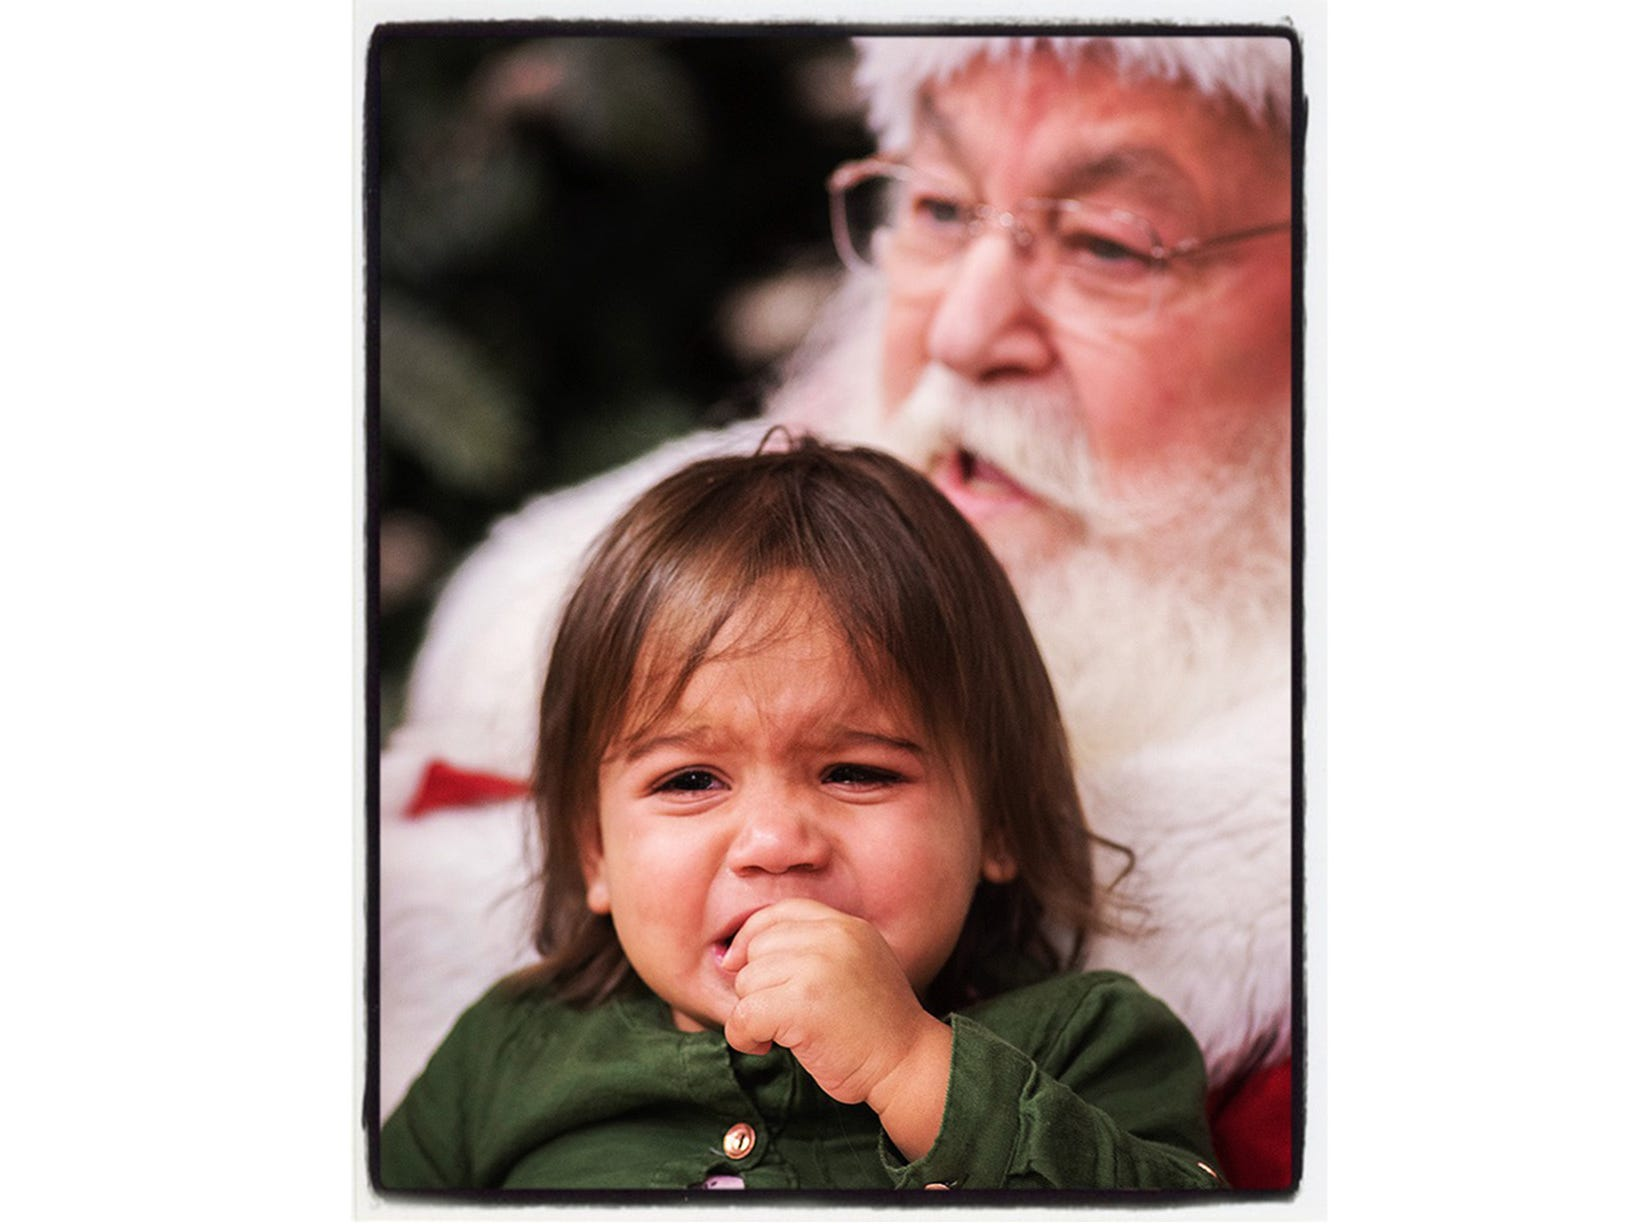 Fifteen month old Brynn McRae isn't real sure about the old bearded guy in the red suit. Canton Twp, Michigan.